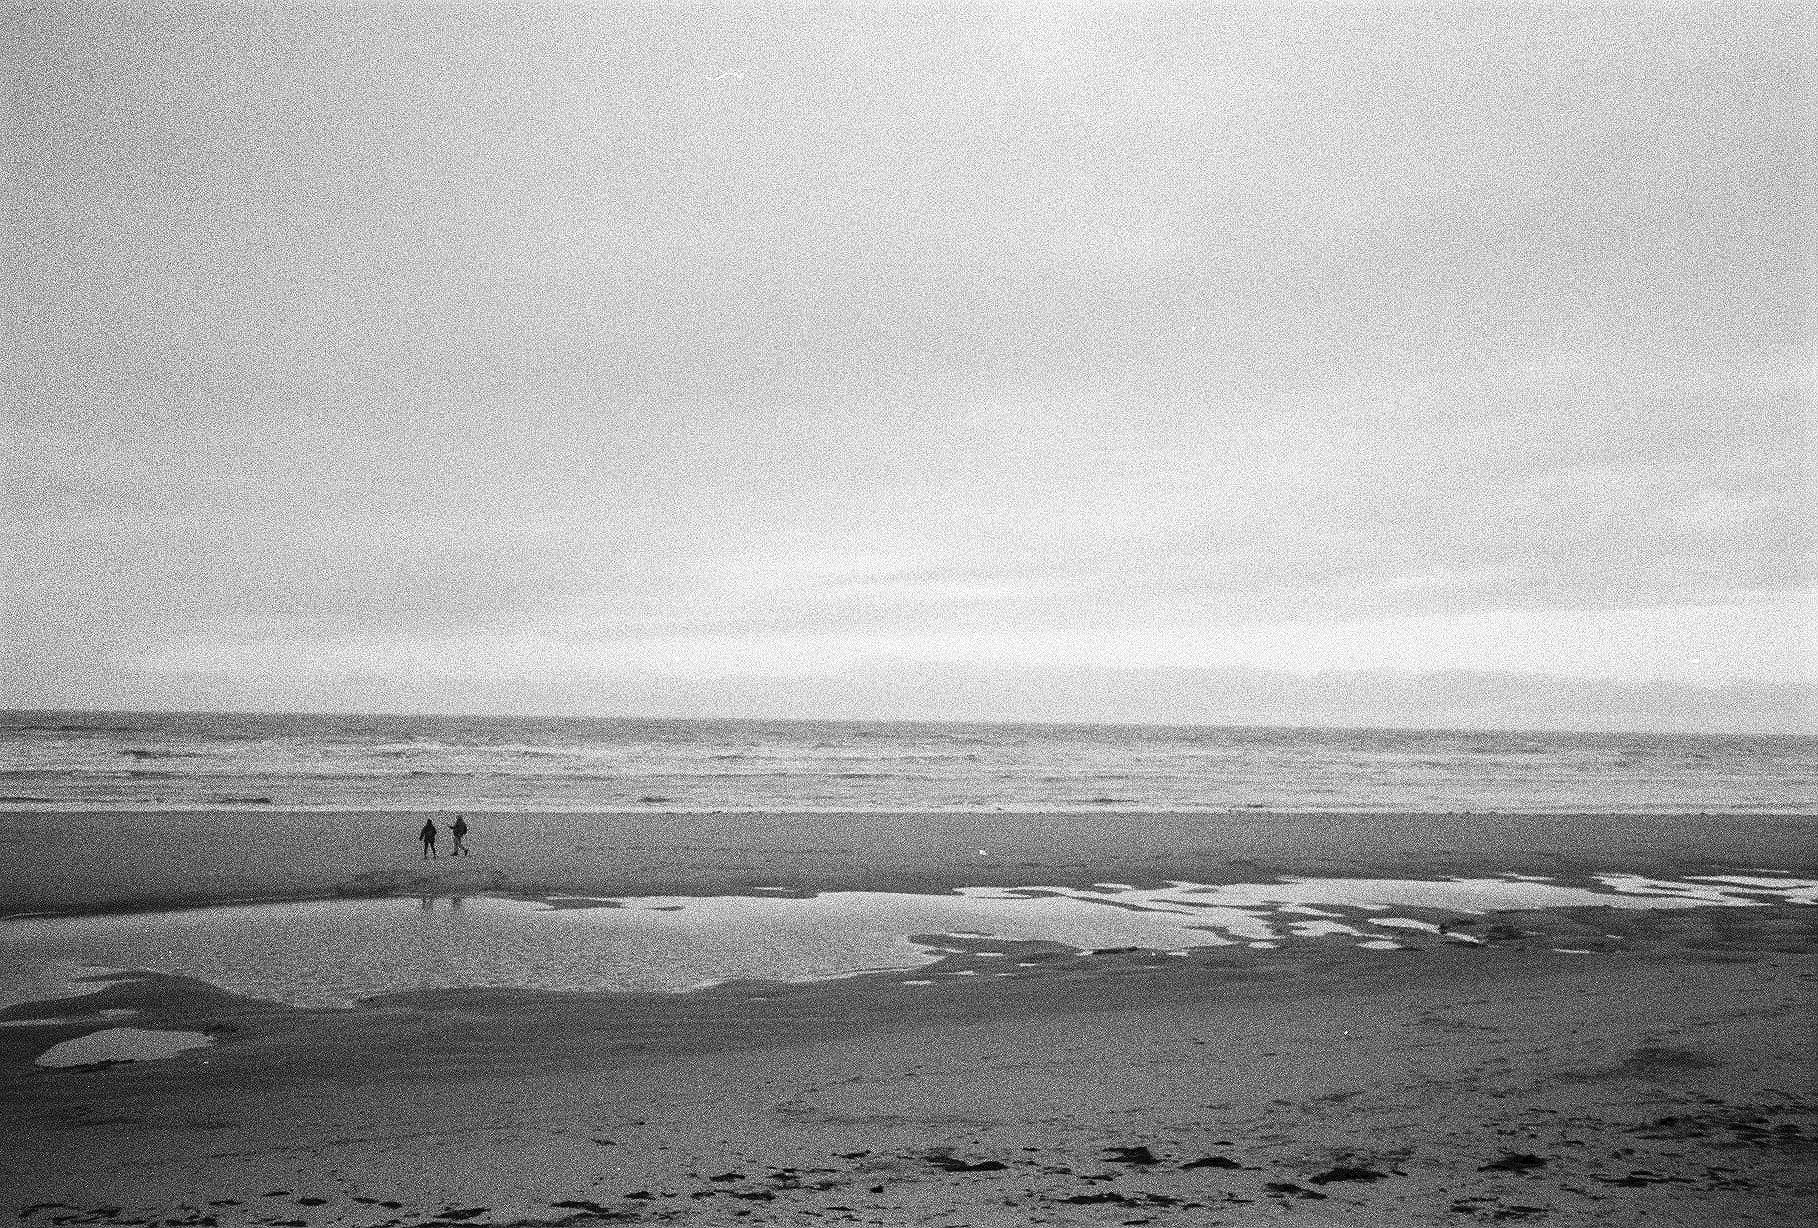 7. Rainy day in Blackpool – HP5 Plus, Canon sureshot AF 7s